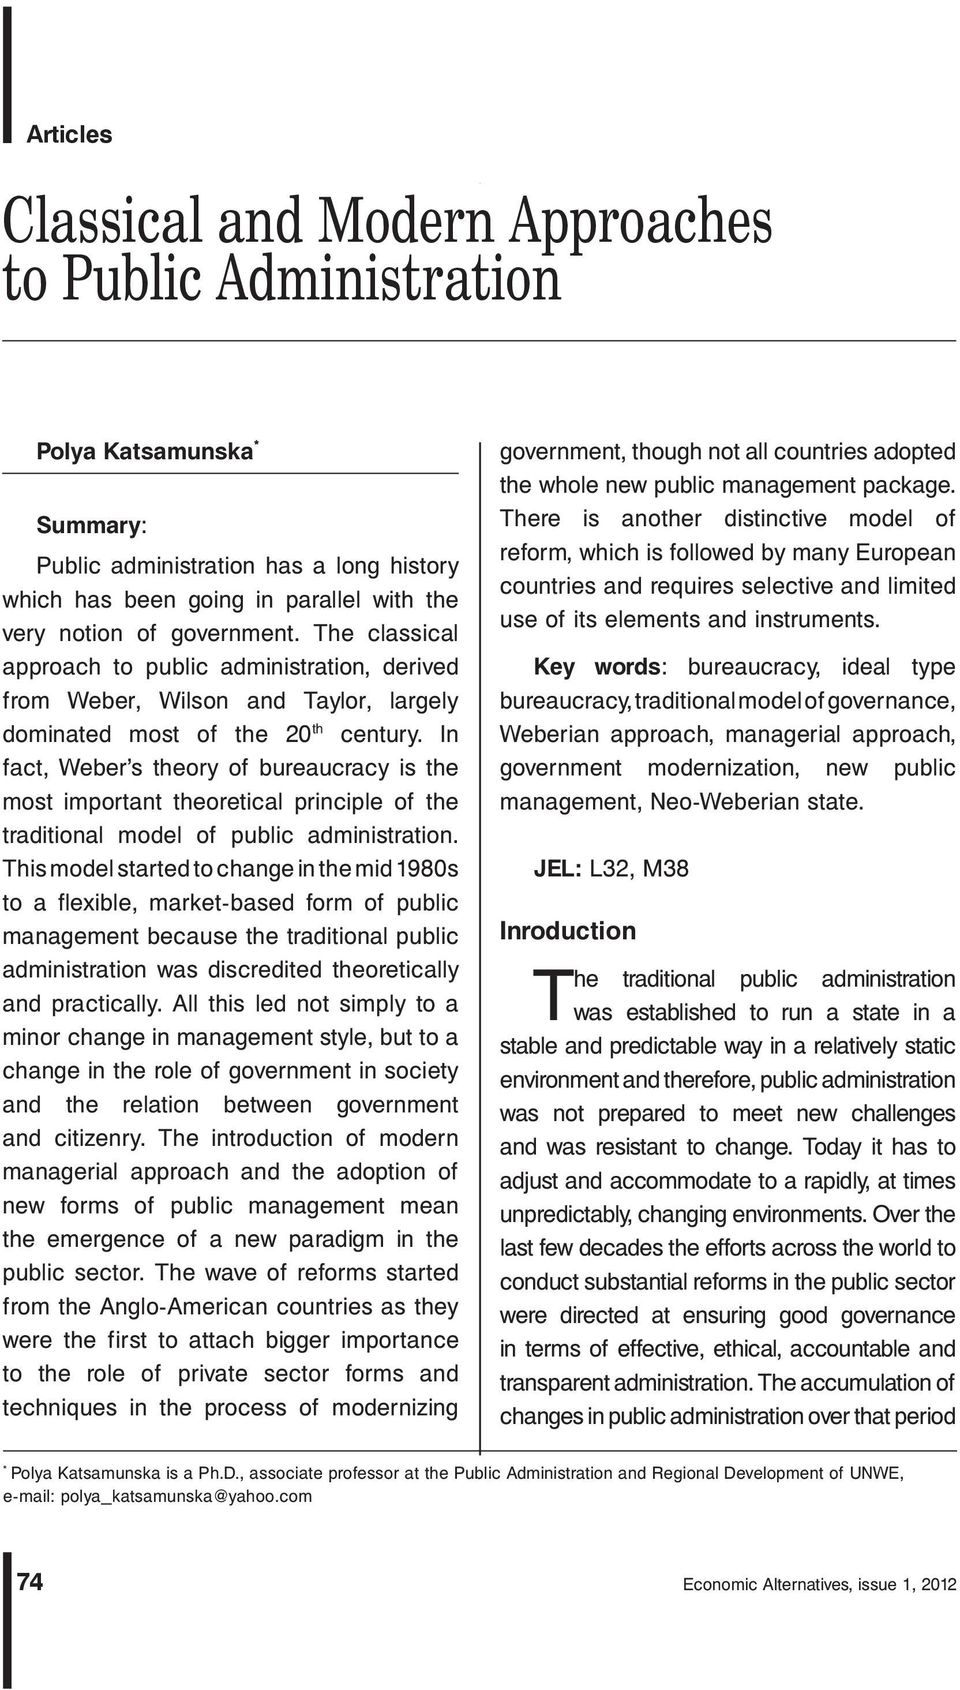 classical approach to public administration